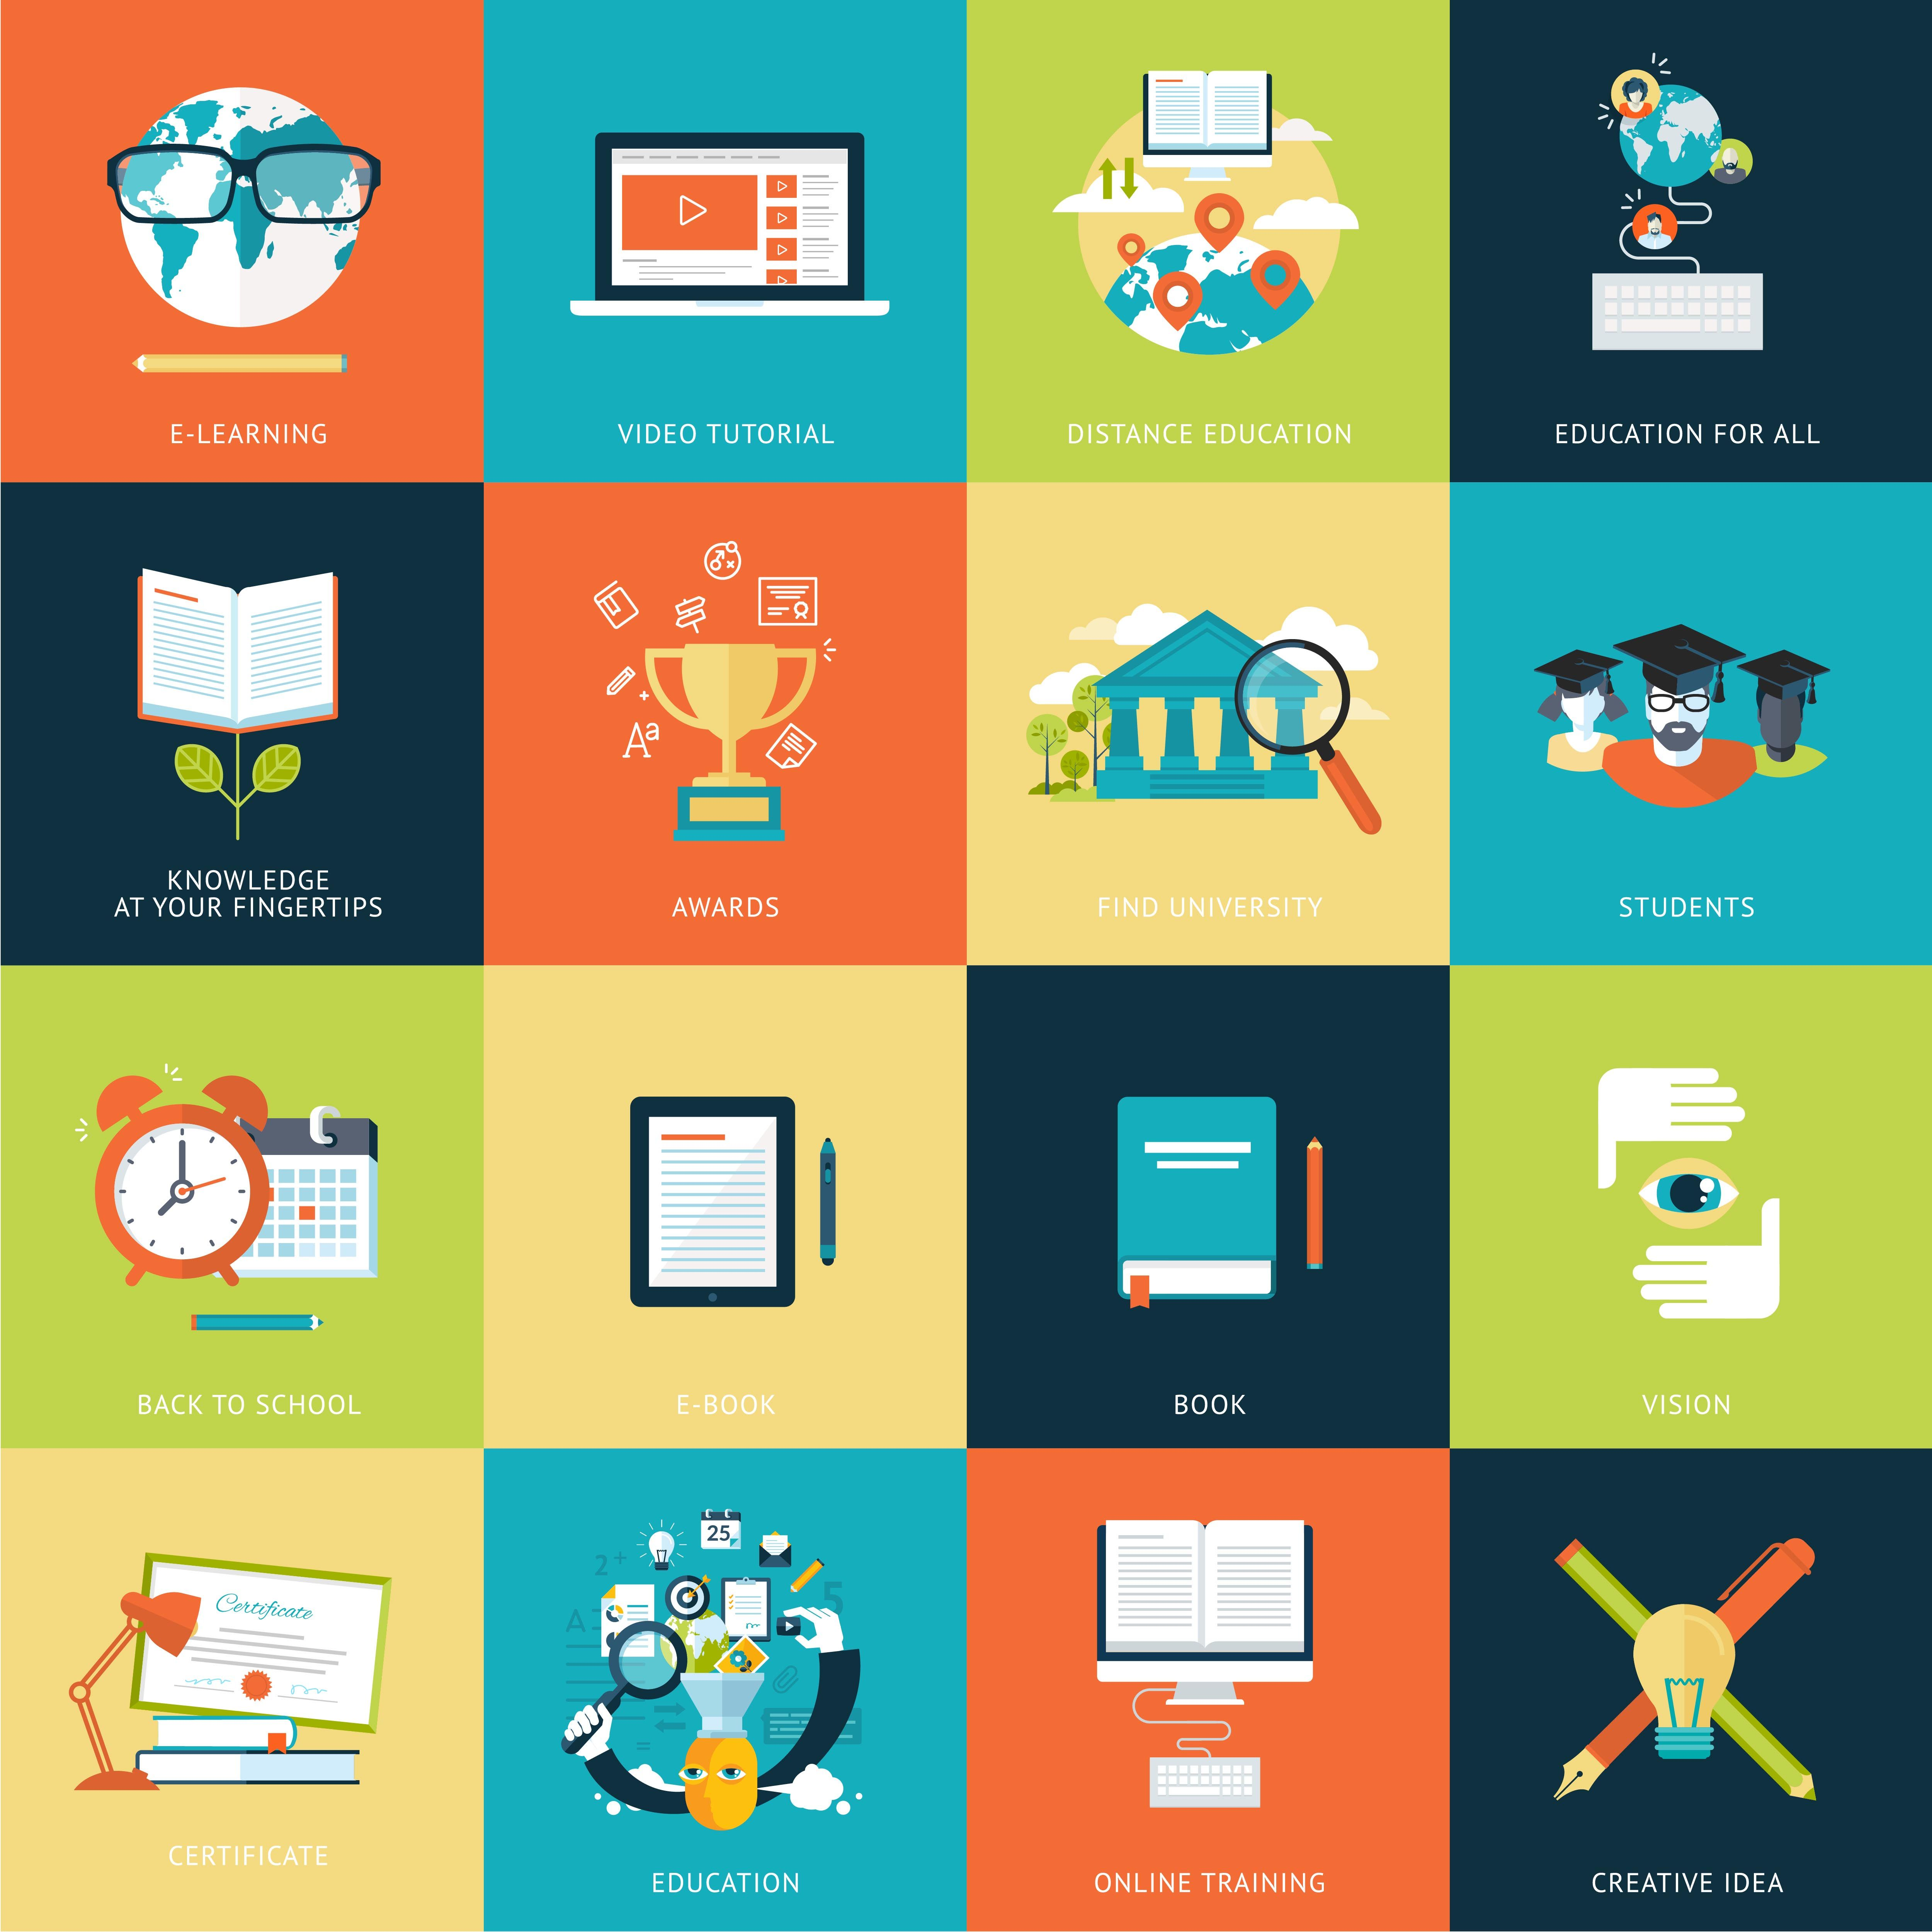 4 Benefits To Using Badges In Online Learning